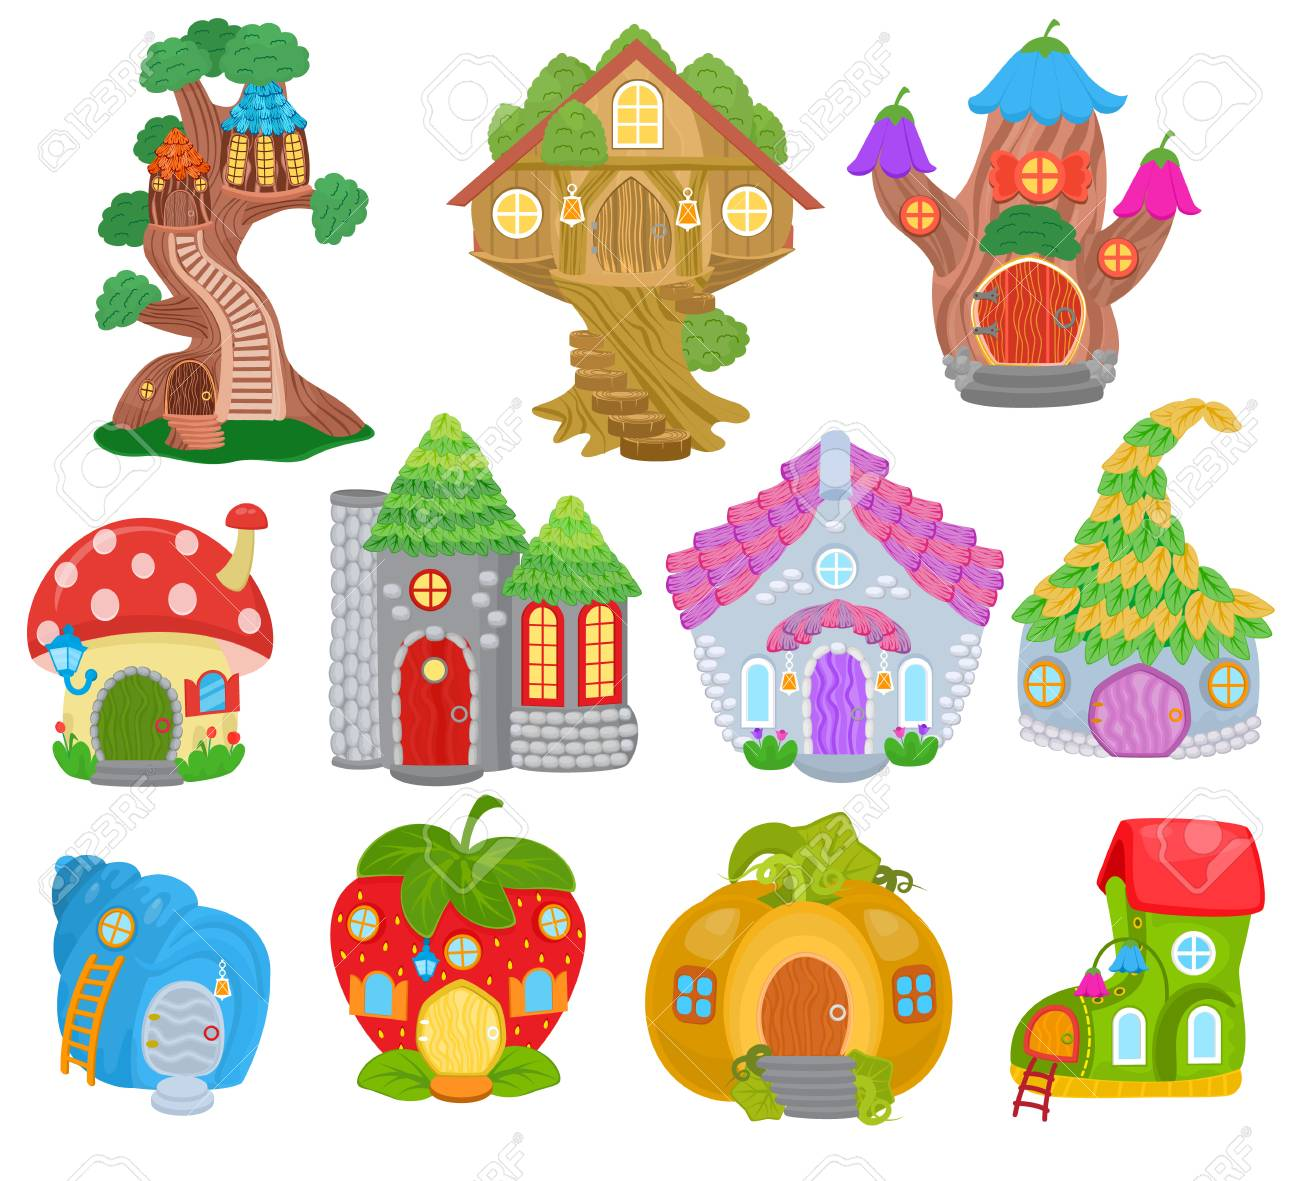 Fantasy house vector cartoon fairy treehouse and magic housing village illustration set of kids fairytale pumpkin or strawberry playhouse for gnome isolated on white background - 107165707